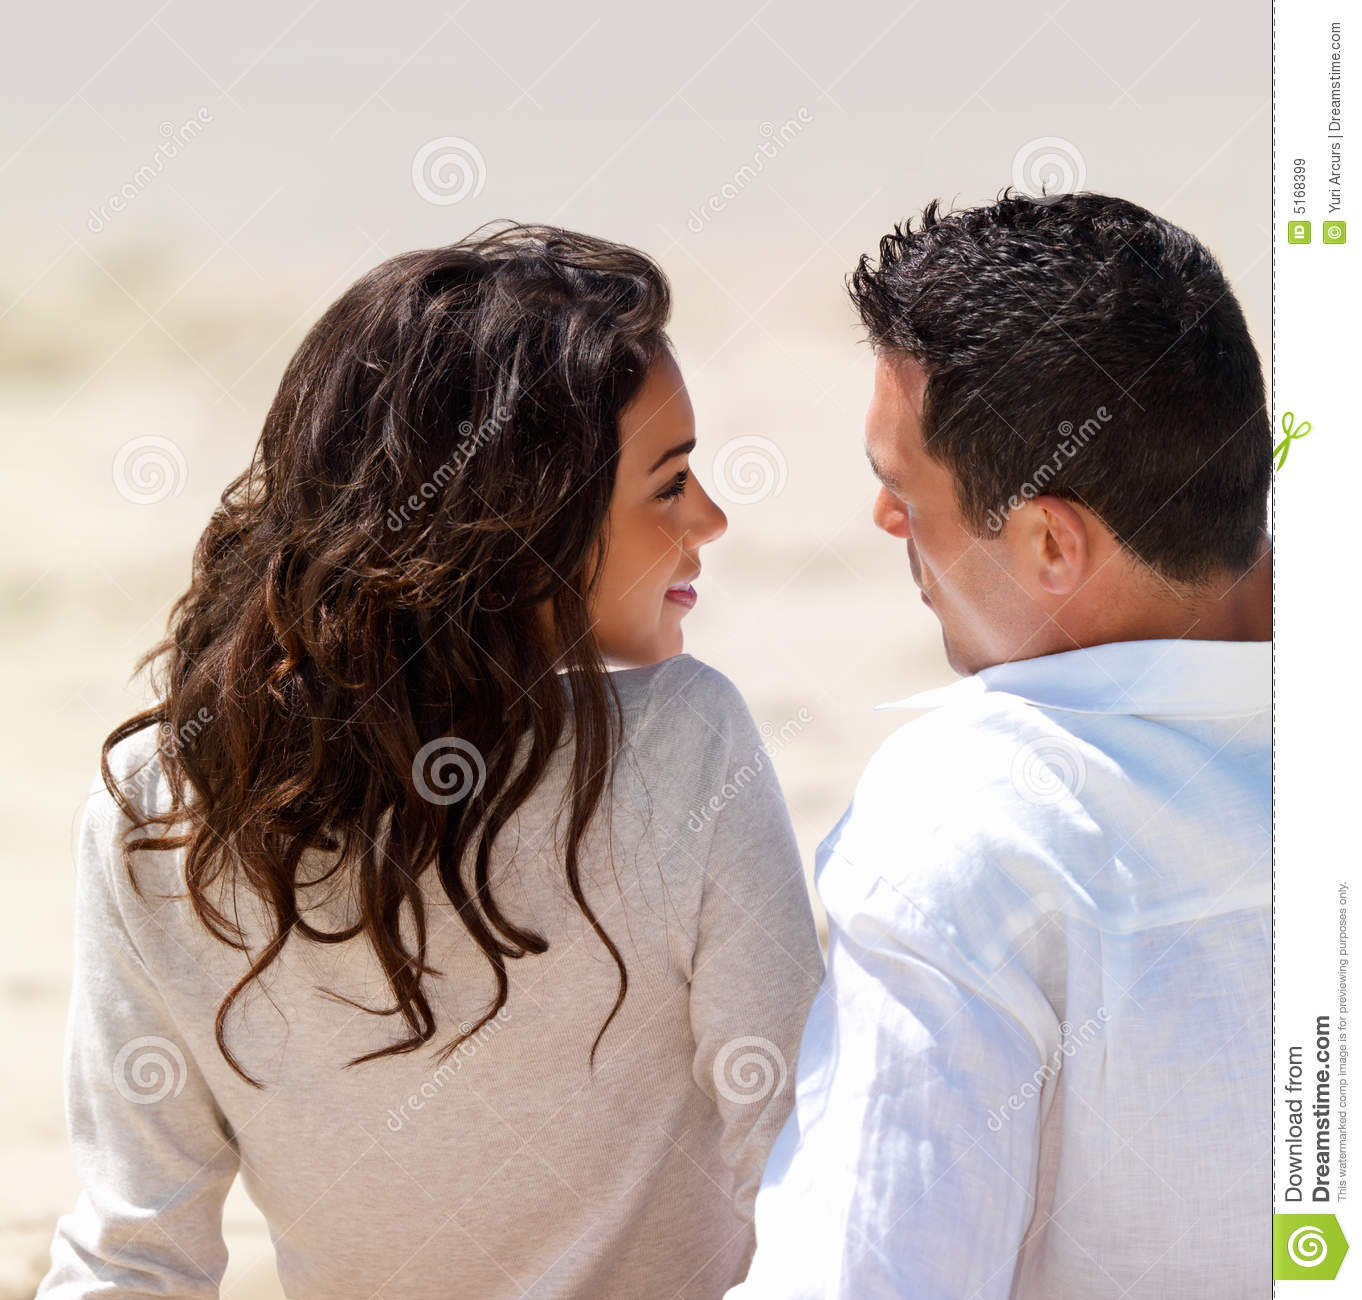 Young Couple Sitting Together Stock Image